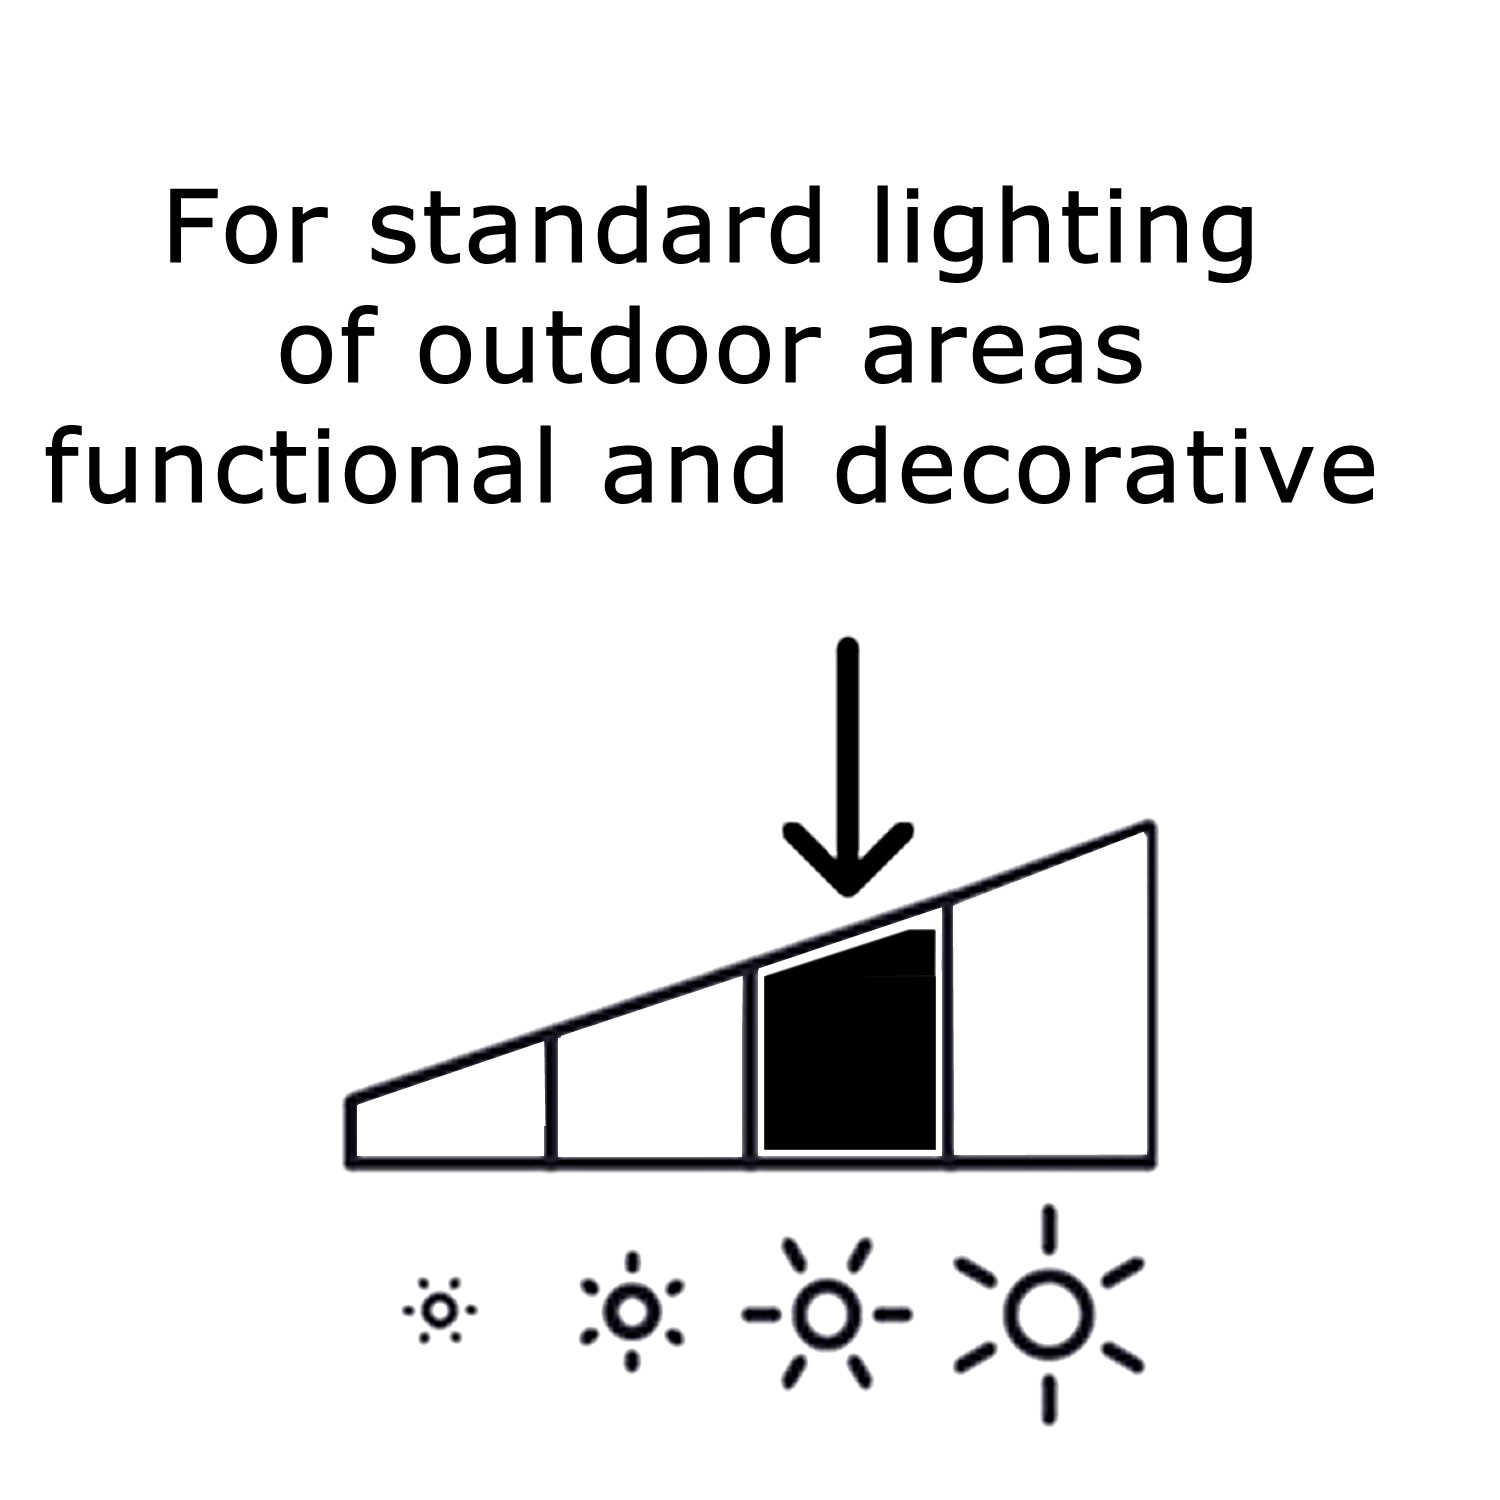 Blooma Heracles Outdoor Wall Spotlight With Pir Sensor Large Black Wiring Lights Australia Exterior Lighting Adjustable Garden Lamp 42w 625 Lumen Ip44 Mains Operated Outside